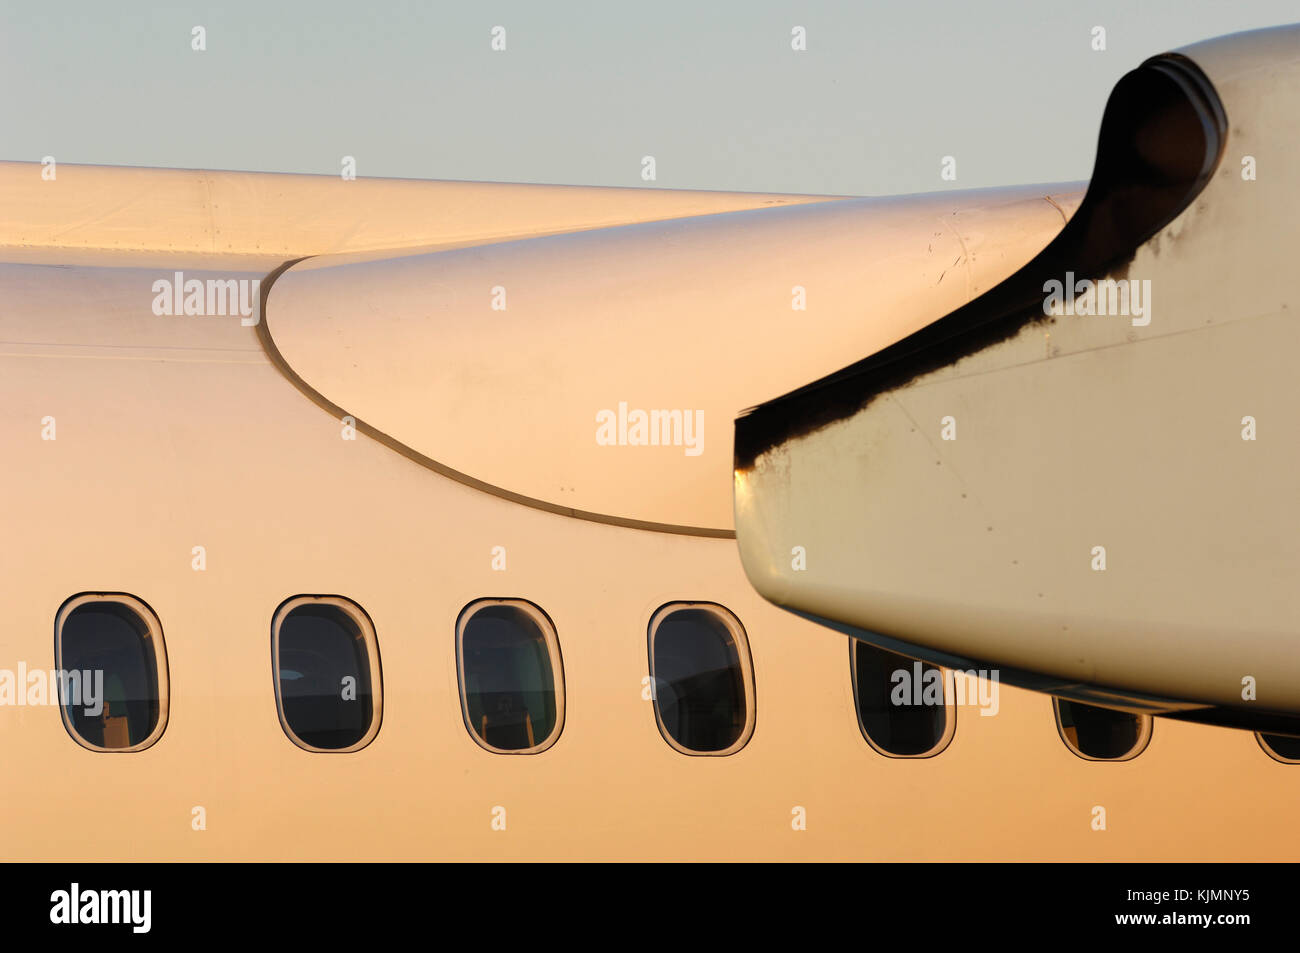 windows, wing fairing and the PW150A engine cowling of the Austrian Arrows Bombardier DHC-8 Q400 parked in the static - Stock Image